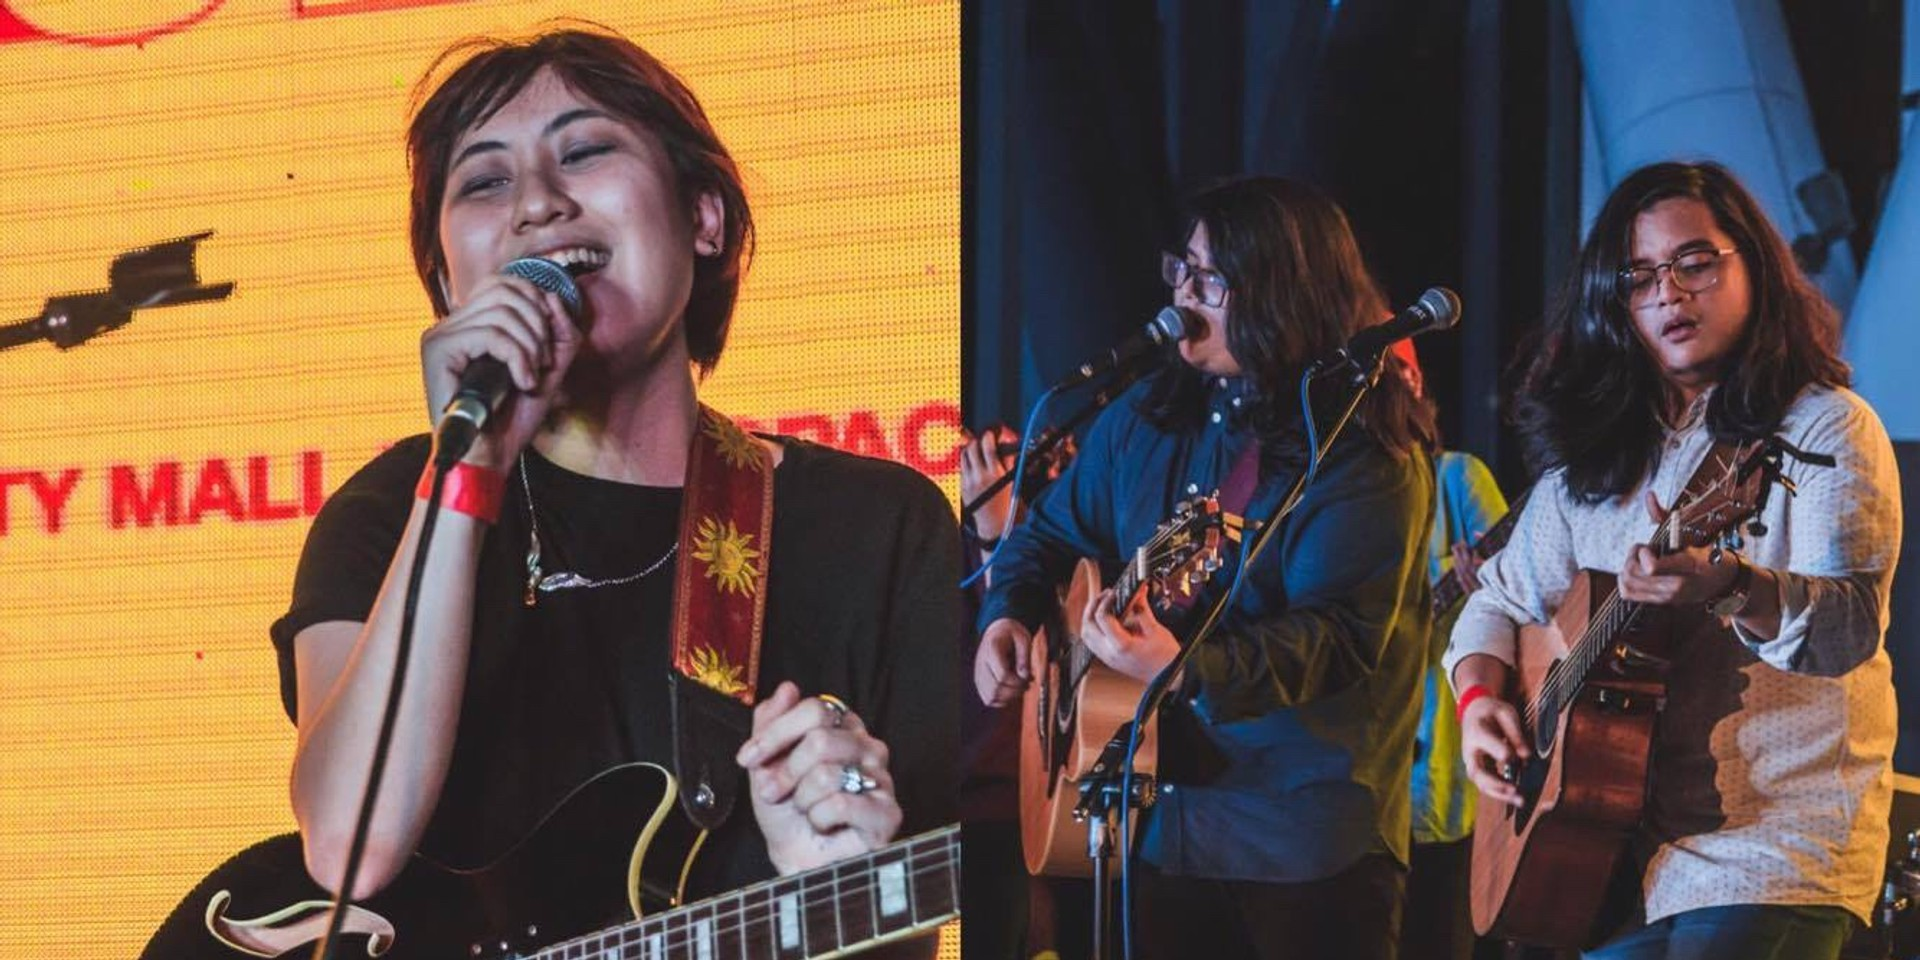 Ben&Ben, BP Valenzuela, and more come together to raise HIV-AIDS awareness